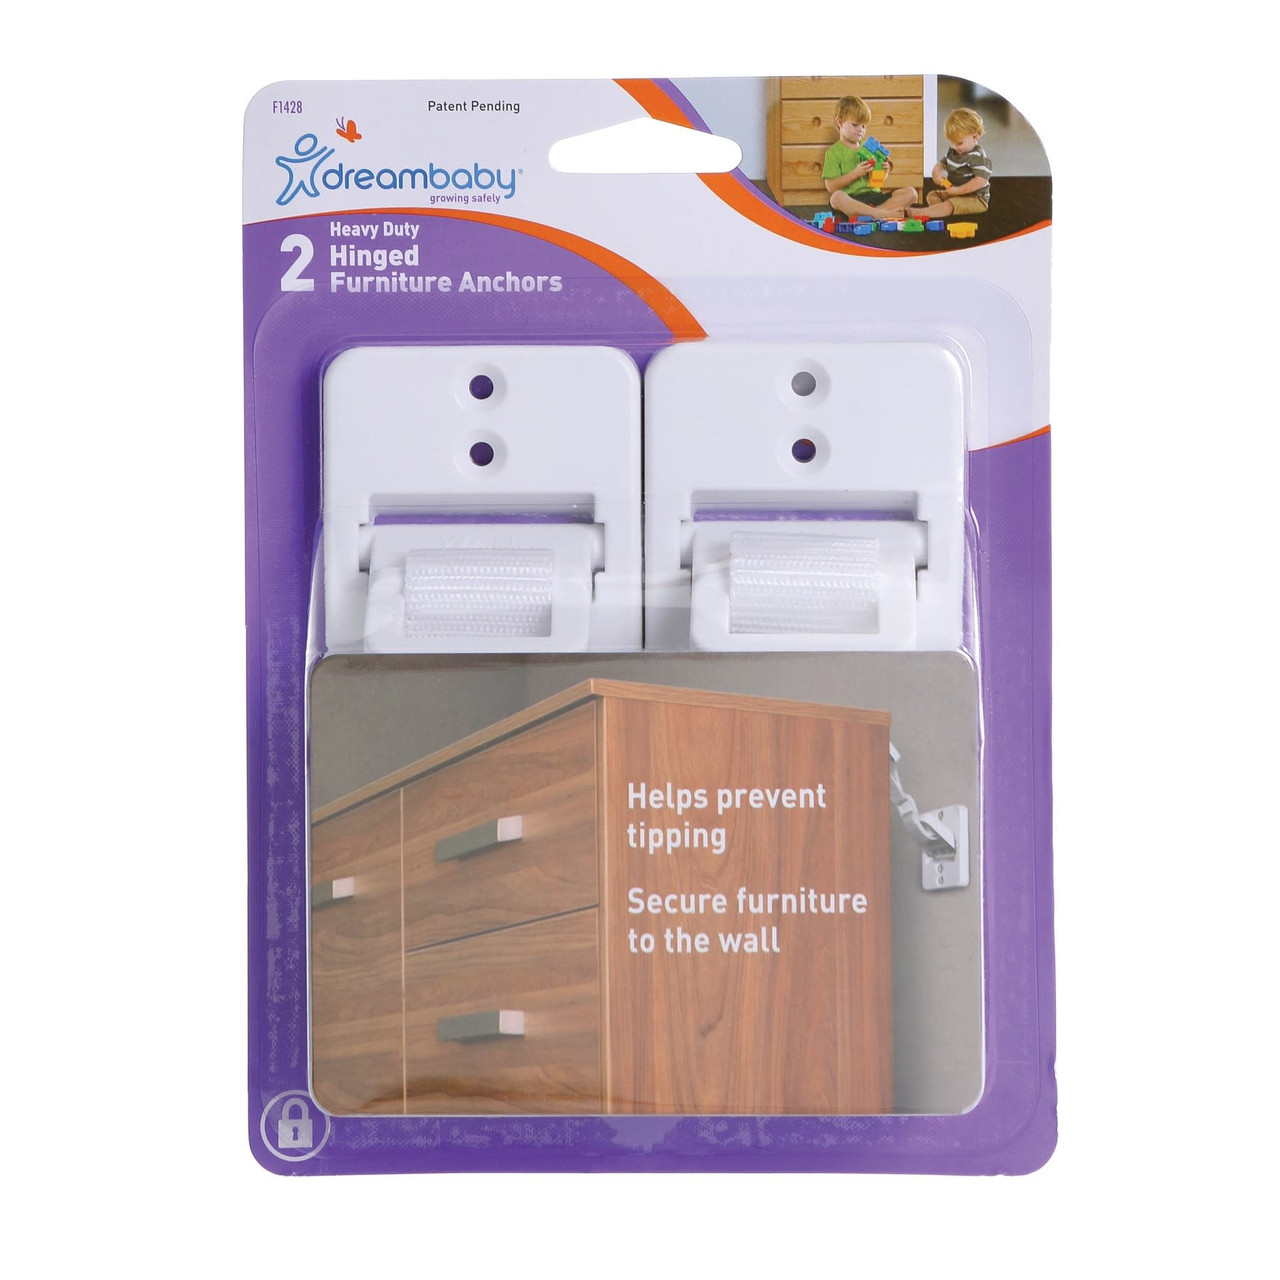 Dreambaby Hinged Furniture Anchors 2pk at Baby Barn Discounts Dreambaby Hinged Furniture Anchors help secure furniture in an upright position to the wall to avoid accidental tipping.